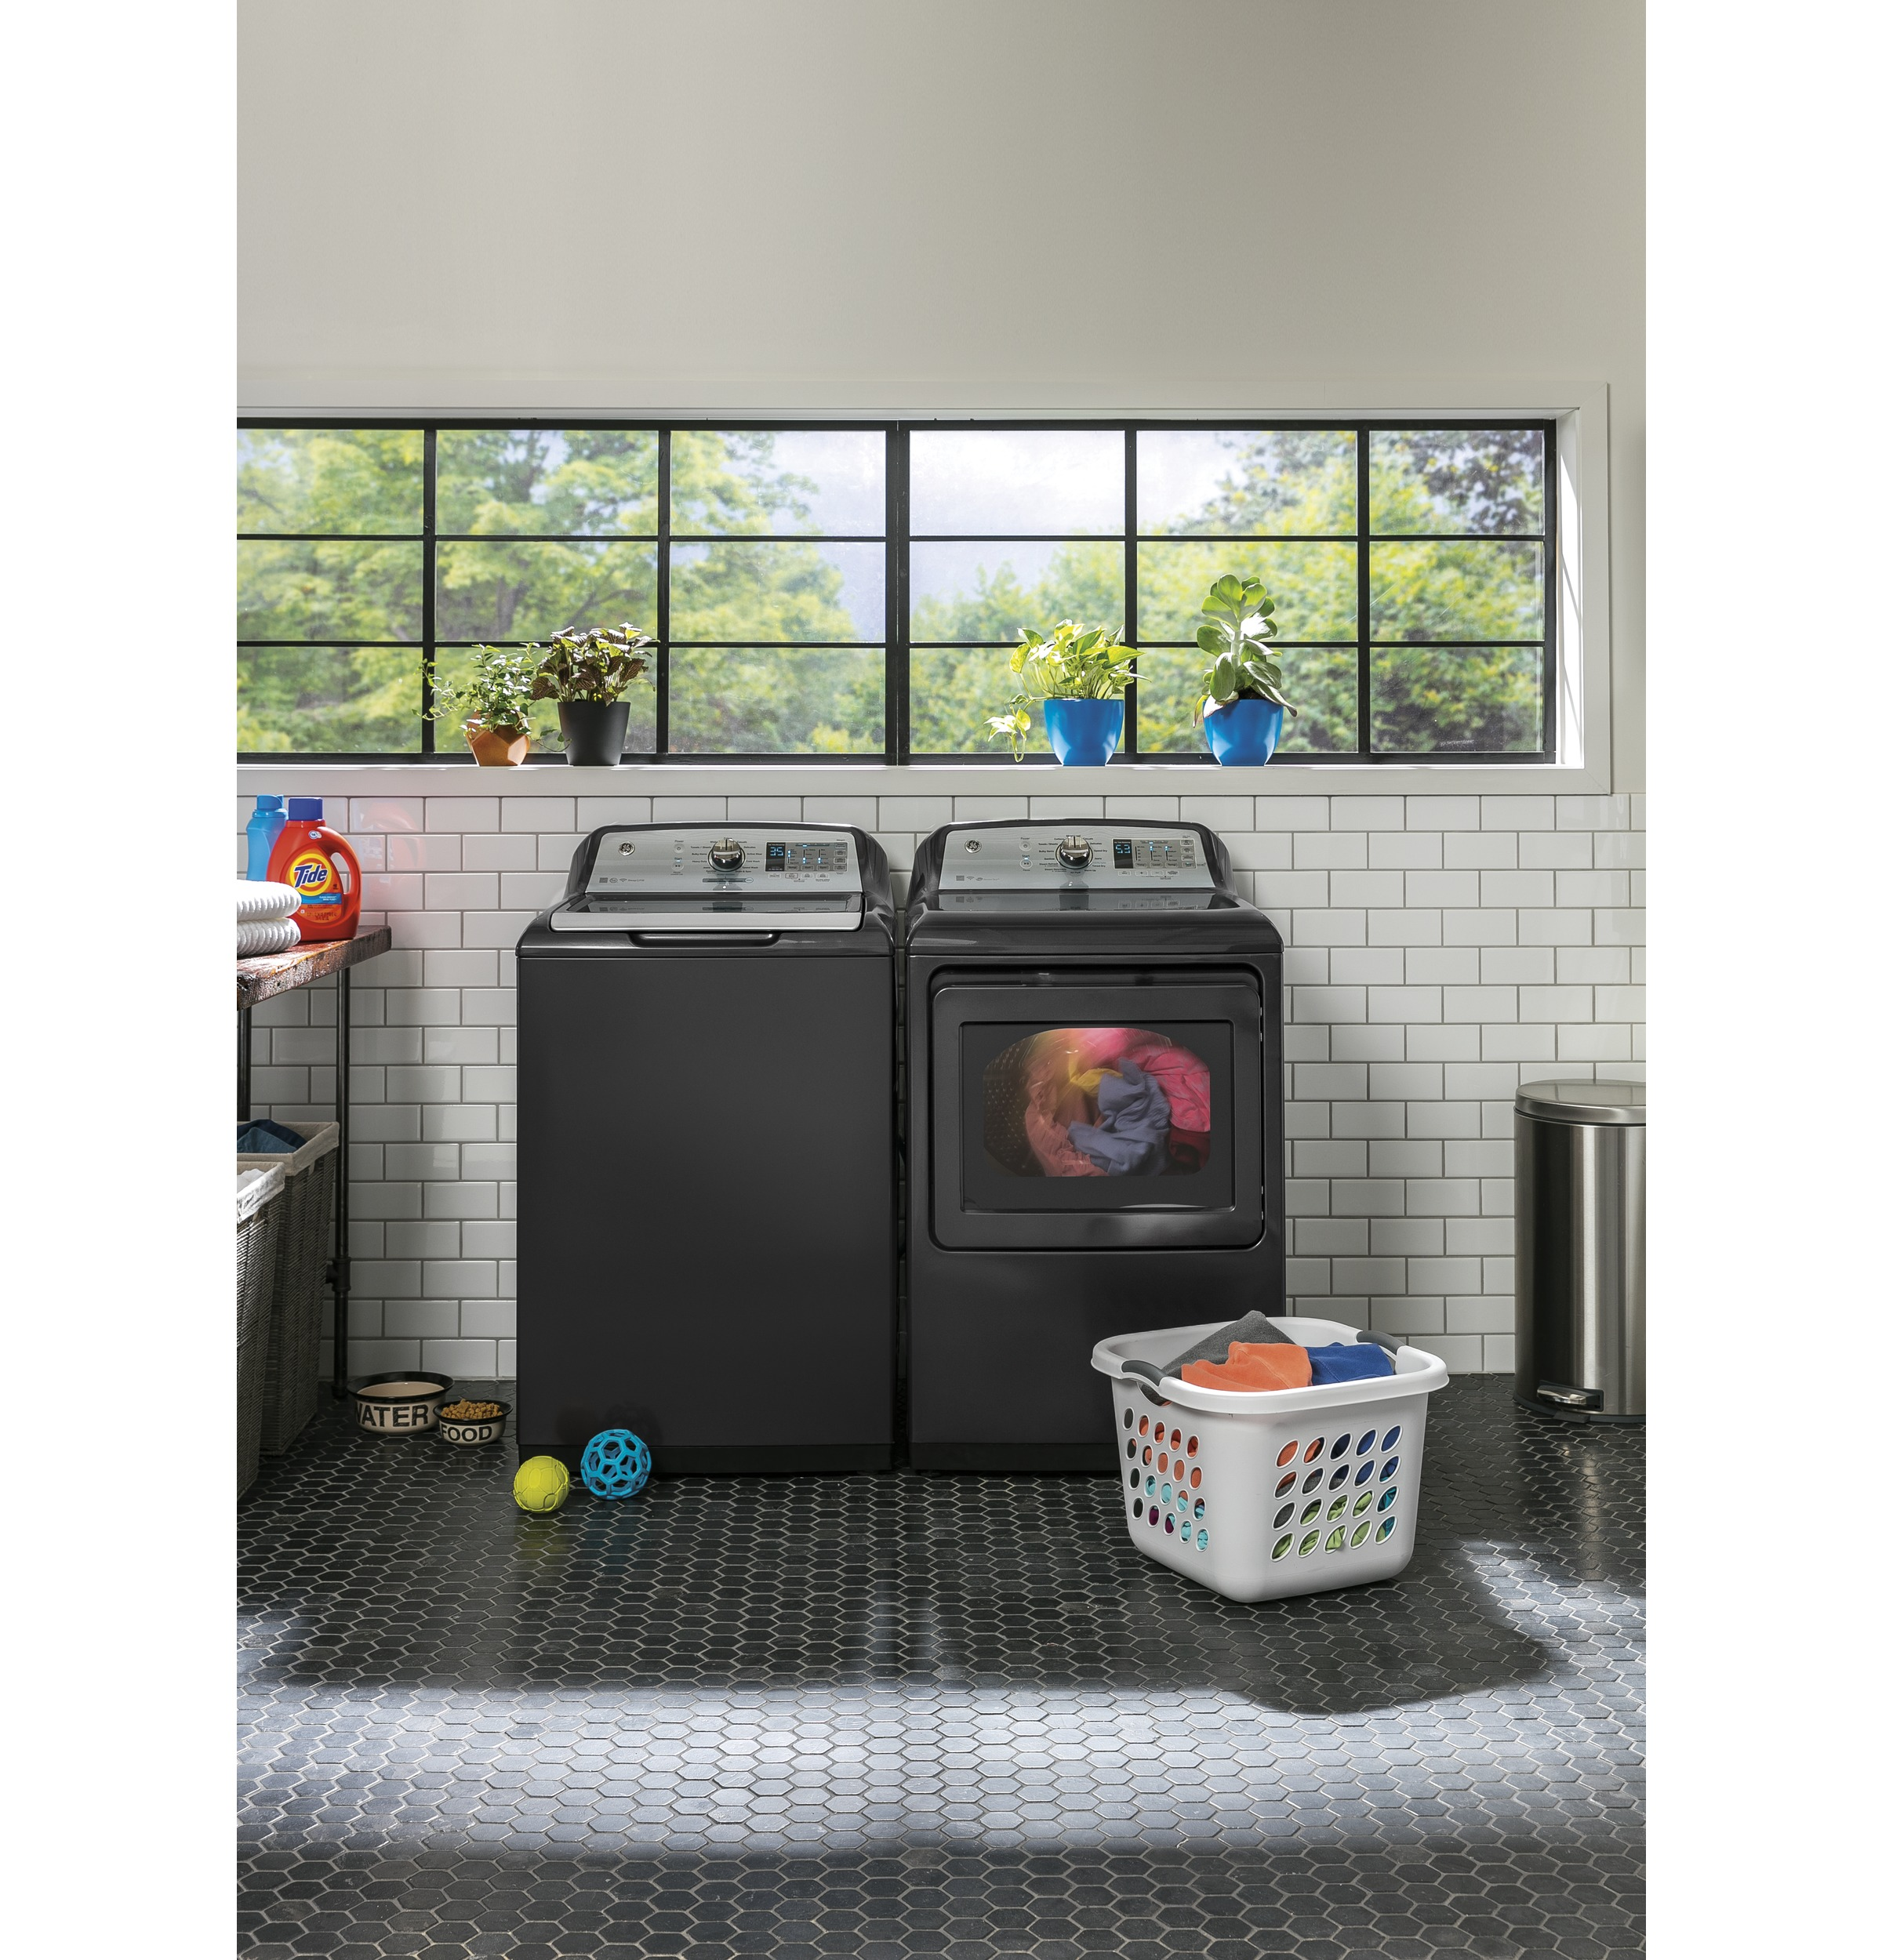 GE Diamond washer and dryer combo